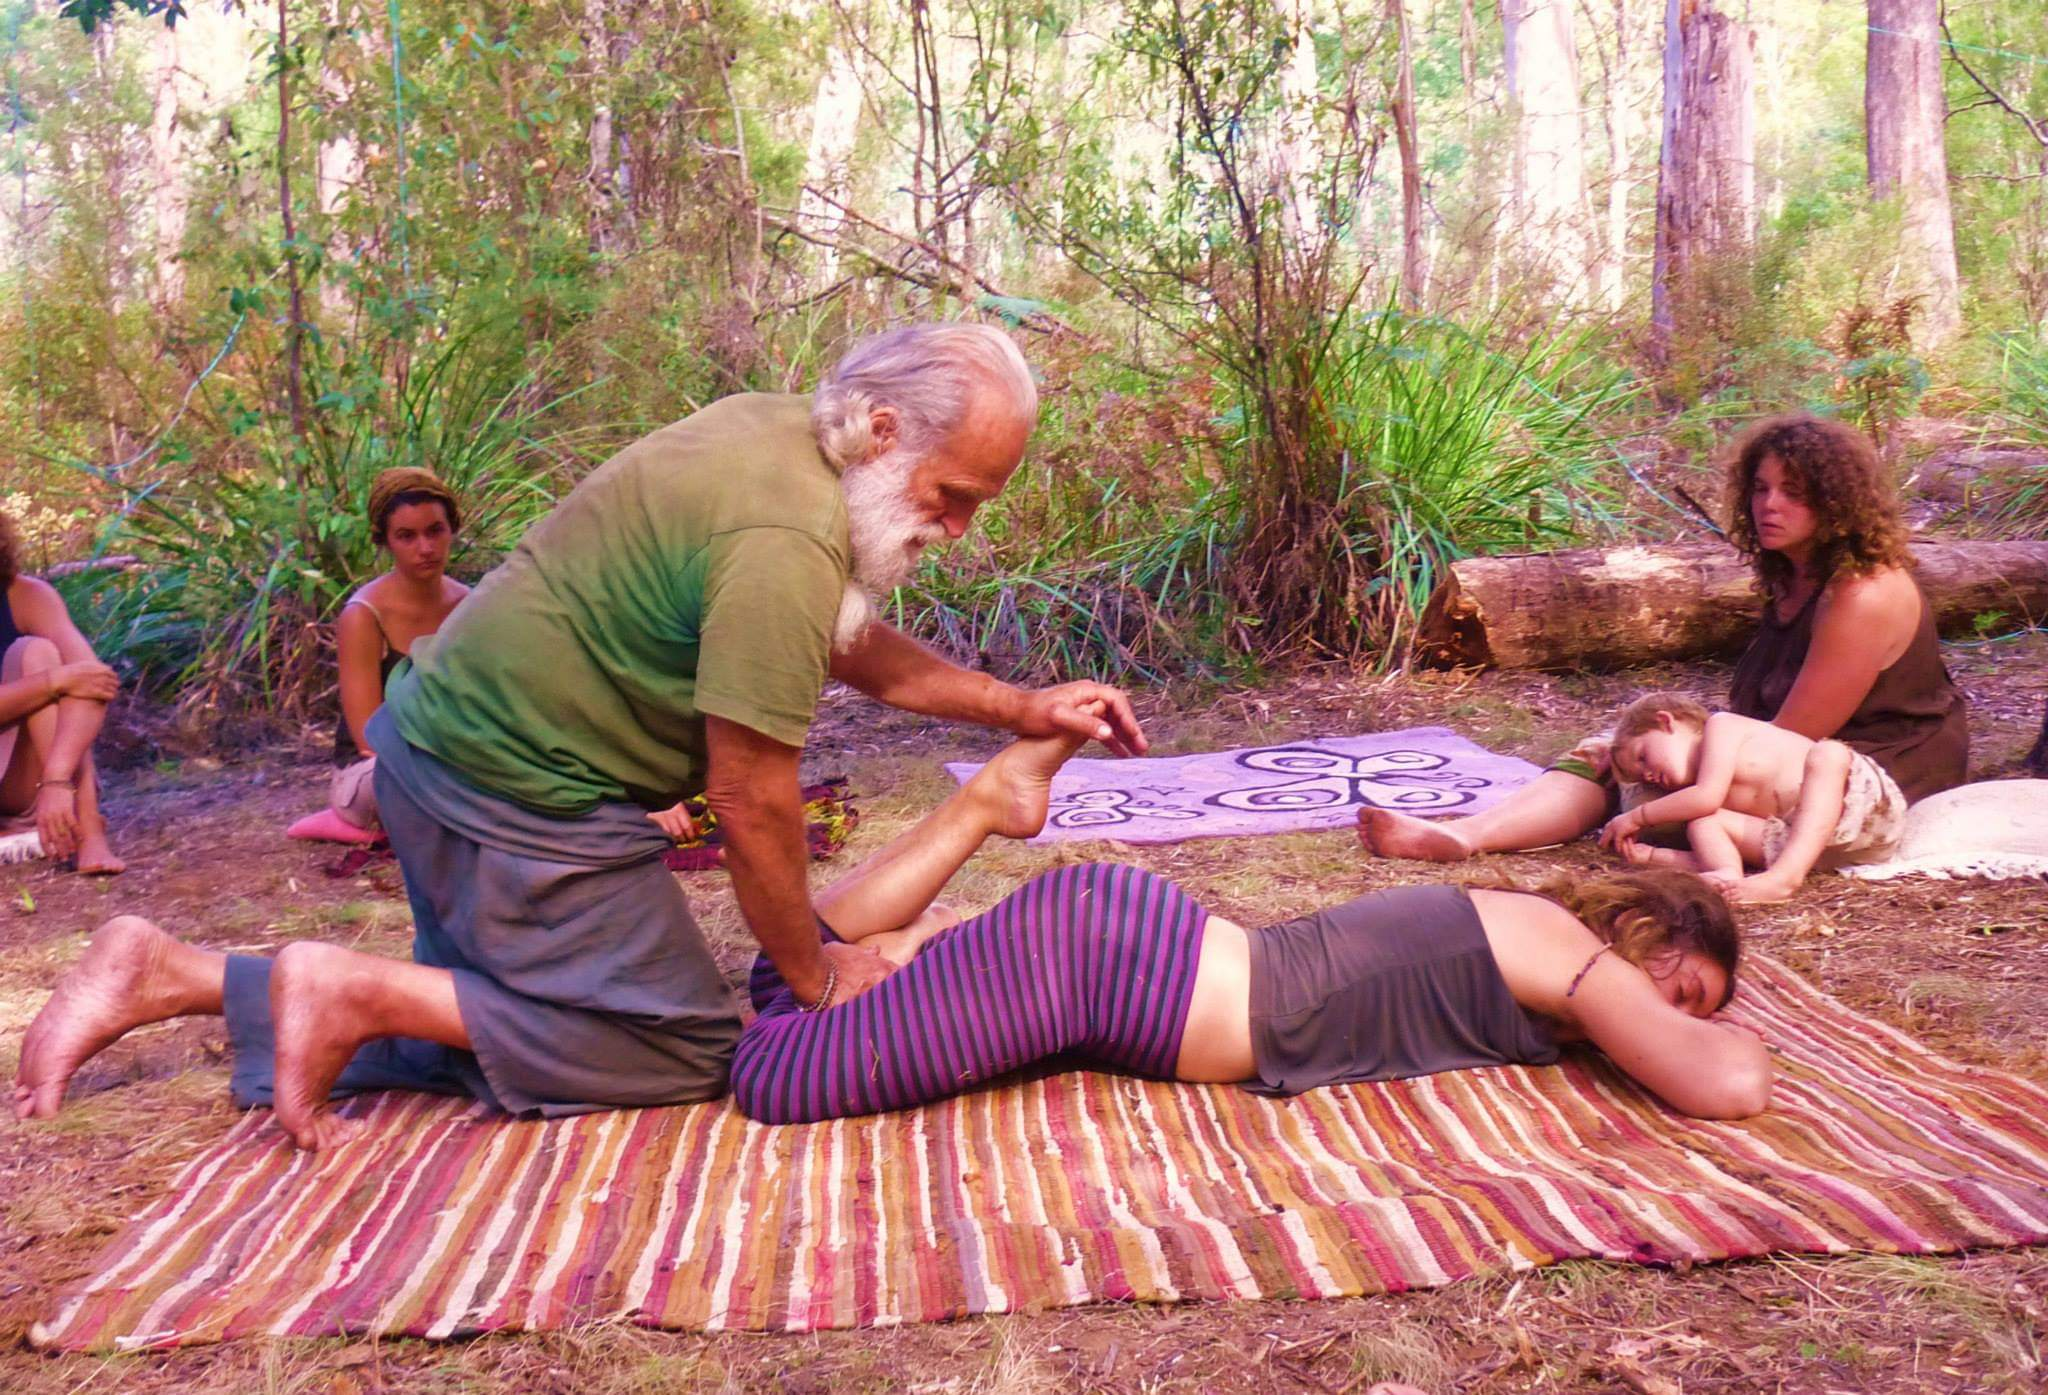 Thai Yoga Massage - Thai Yoga Massage is bodywork art that combines applied yoga with acupressure and energy work, engaging all parts of the body. We get acquainted with this beautiful ancient traditional bodywork form by watching the demonstration and then pairing off to practice.